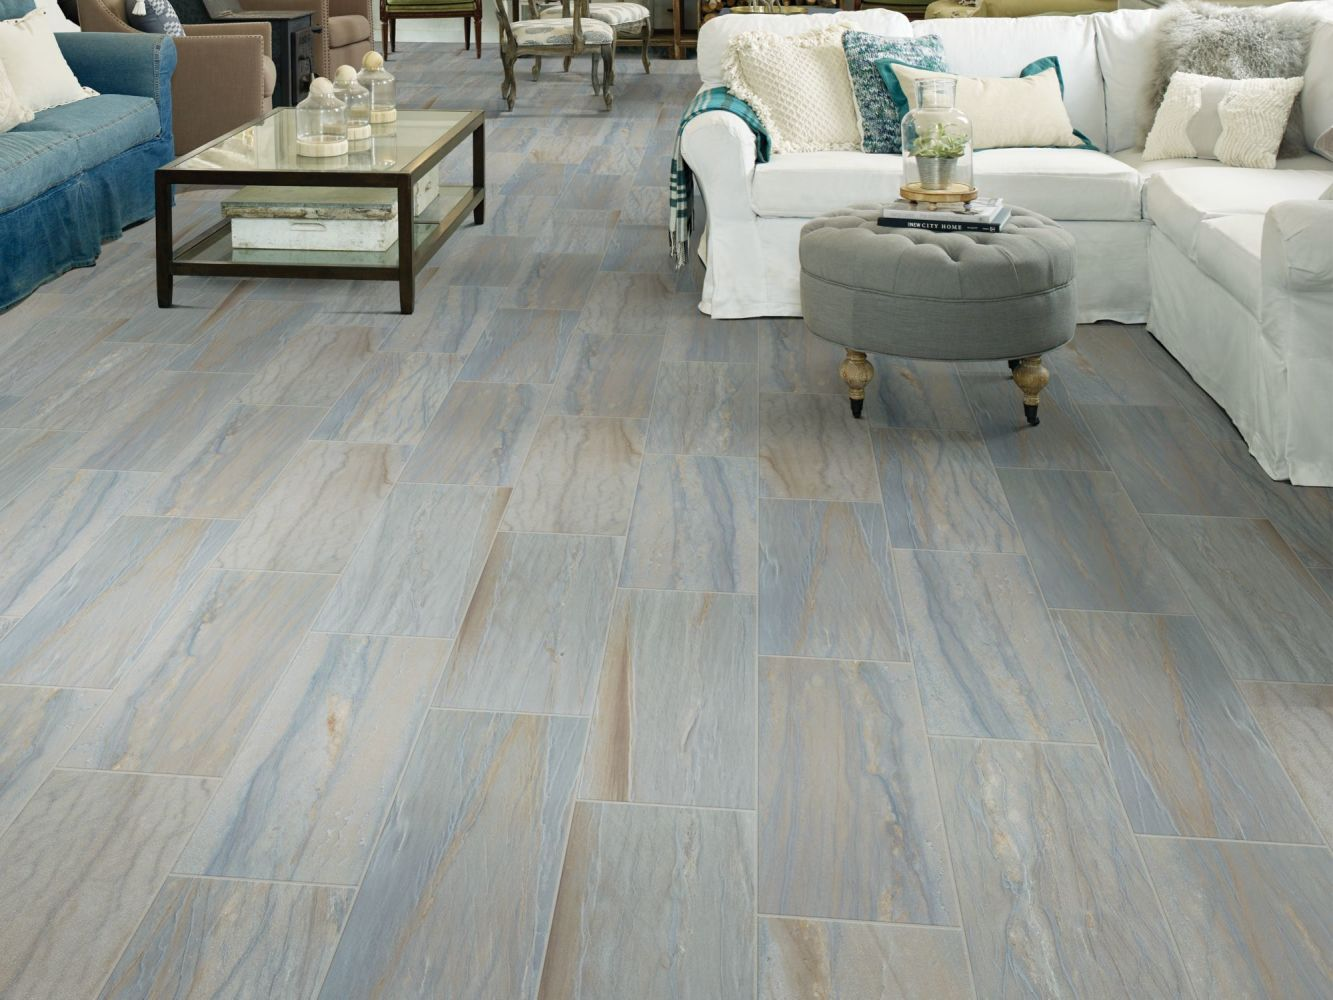 Shaw Floors Ceramic Solutions Tulum Tide12x24 Azul 00450_CS87W